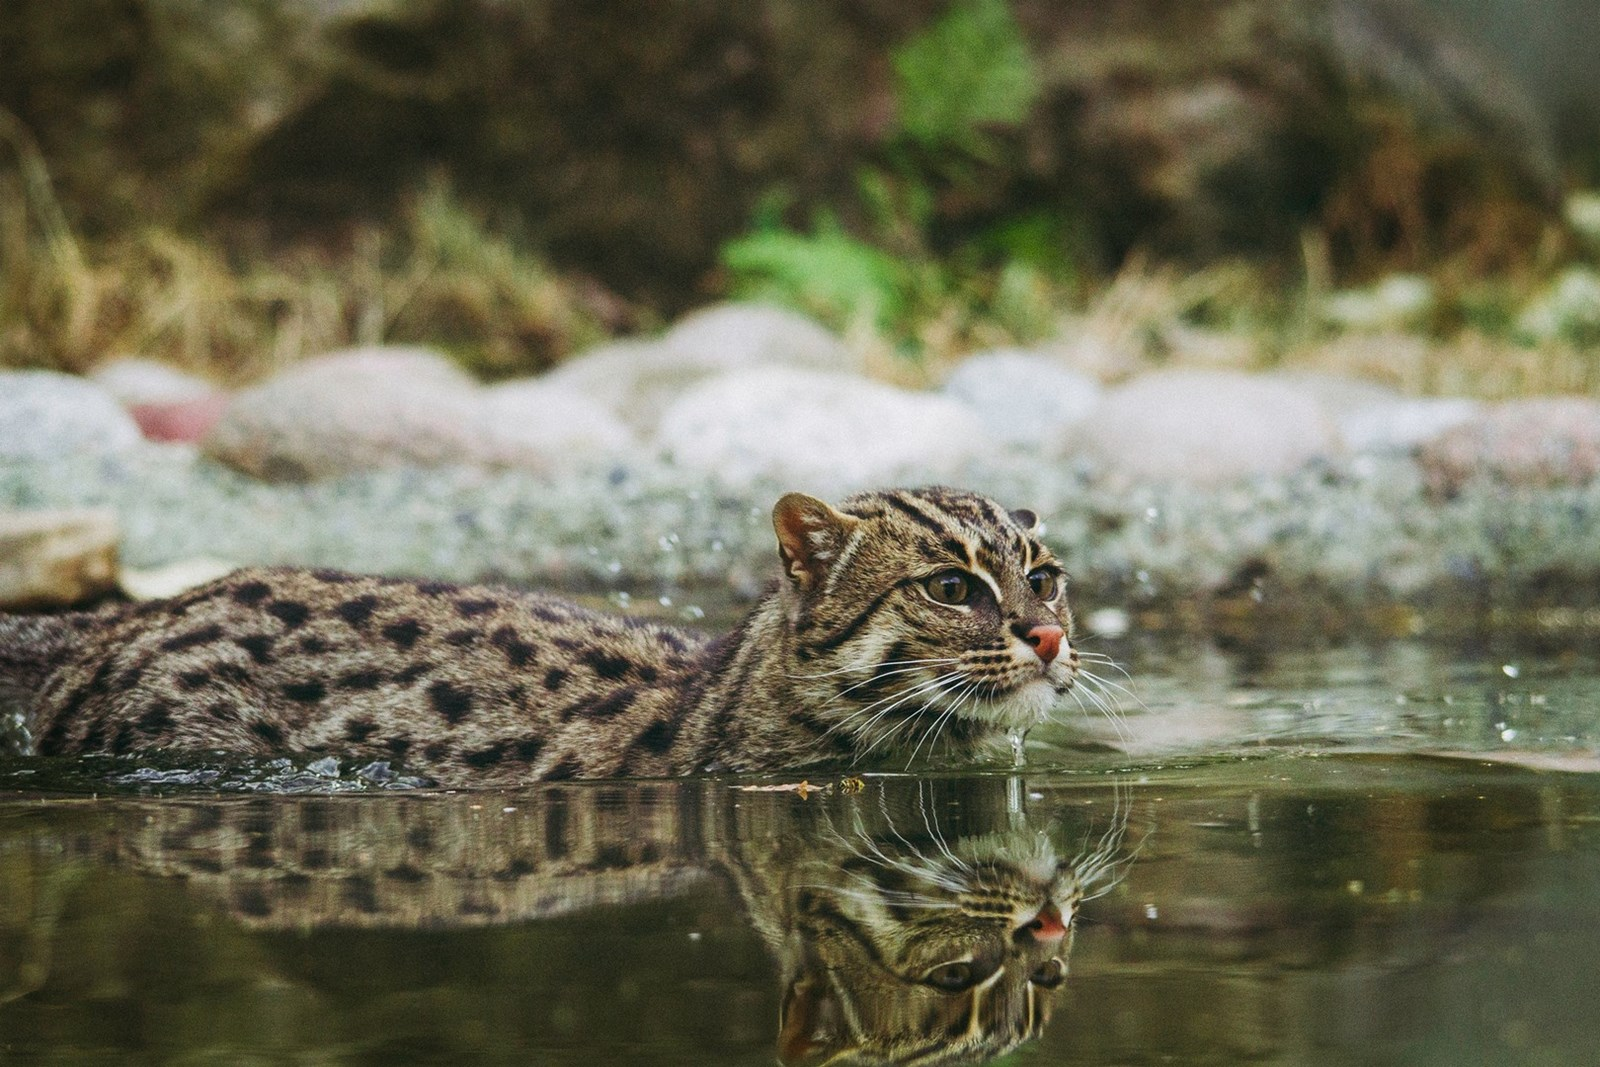 Brown spotty cat in water